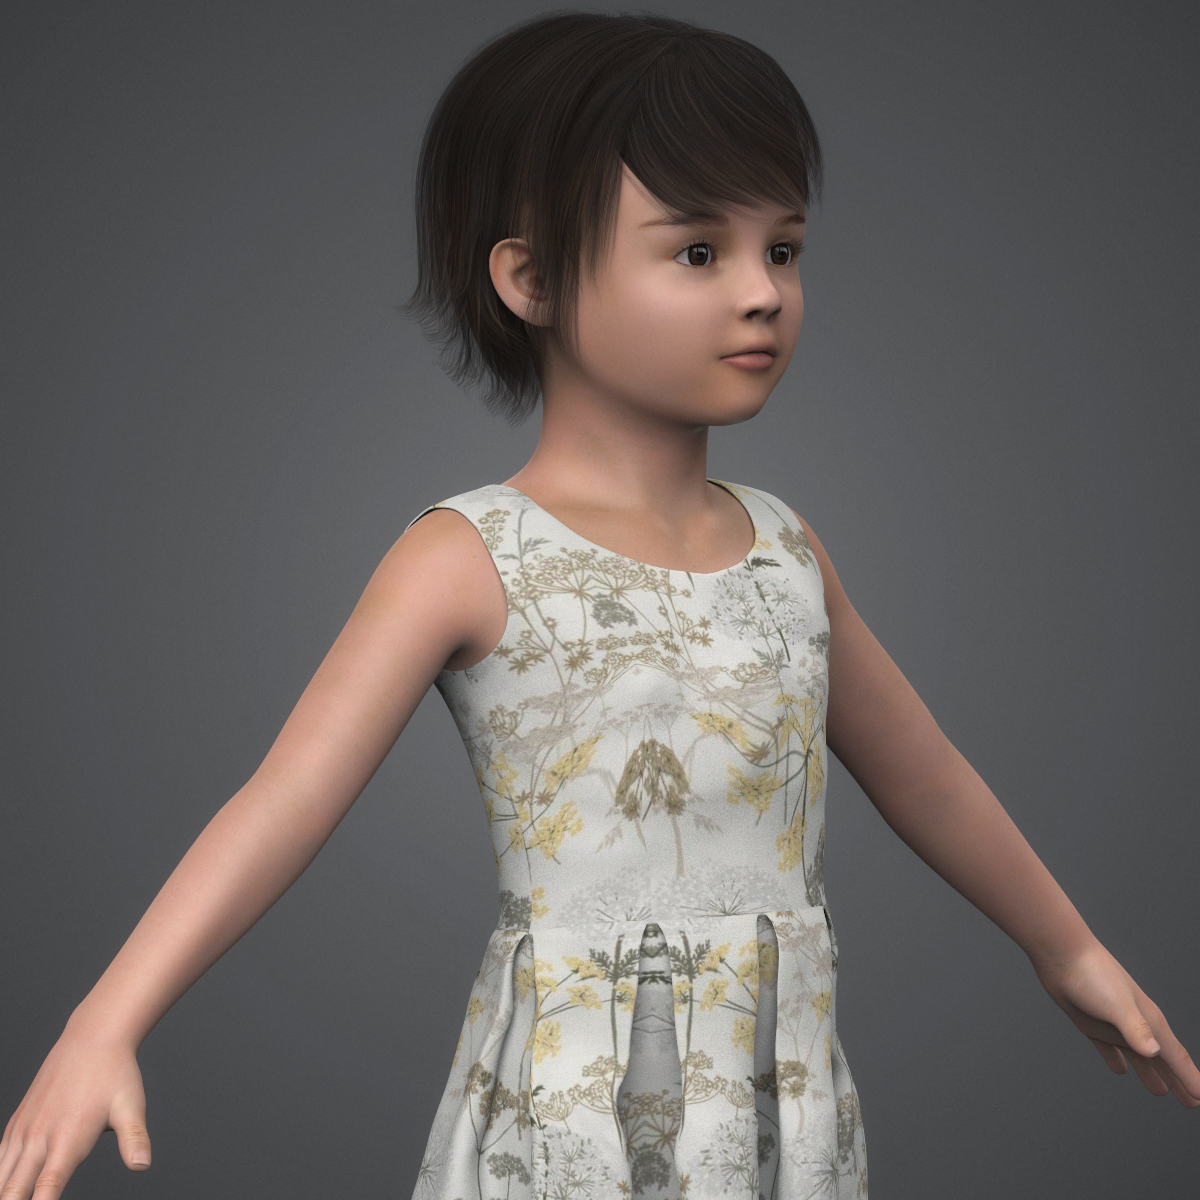 beautiful child girl 3d model max fbx c4d ma mb texture obj 252401